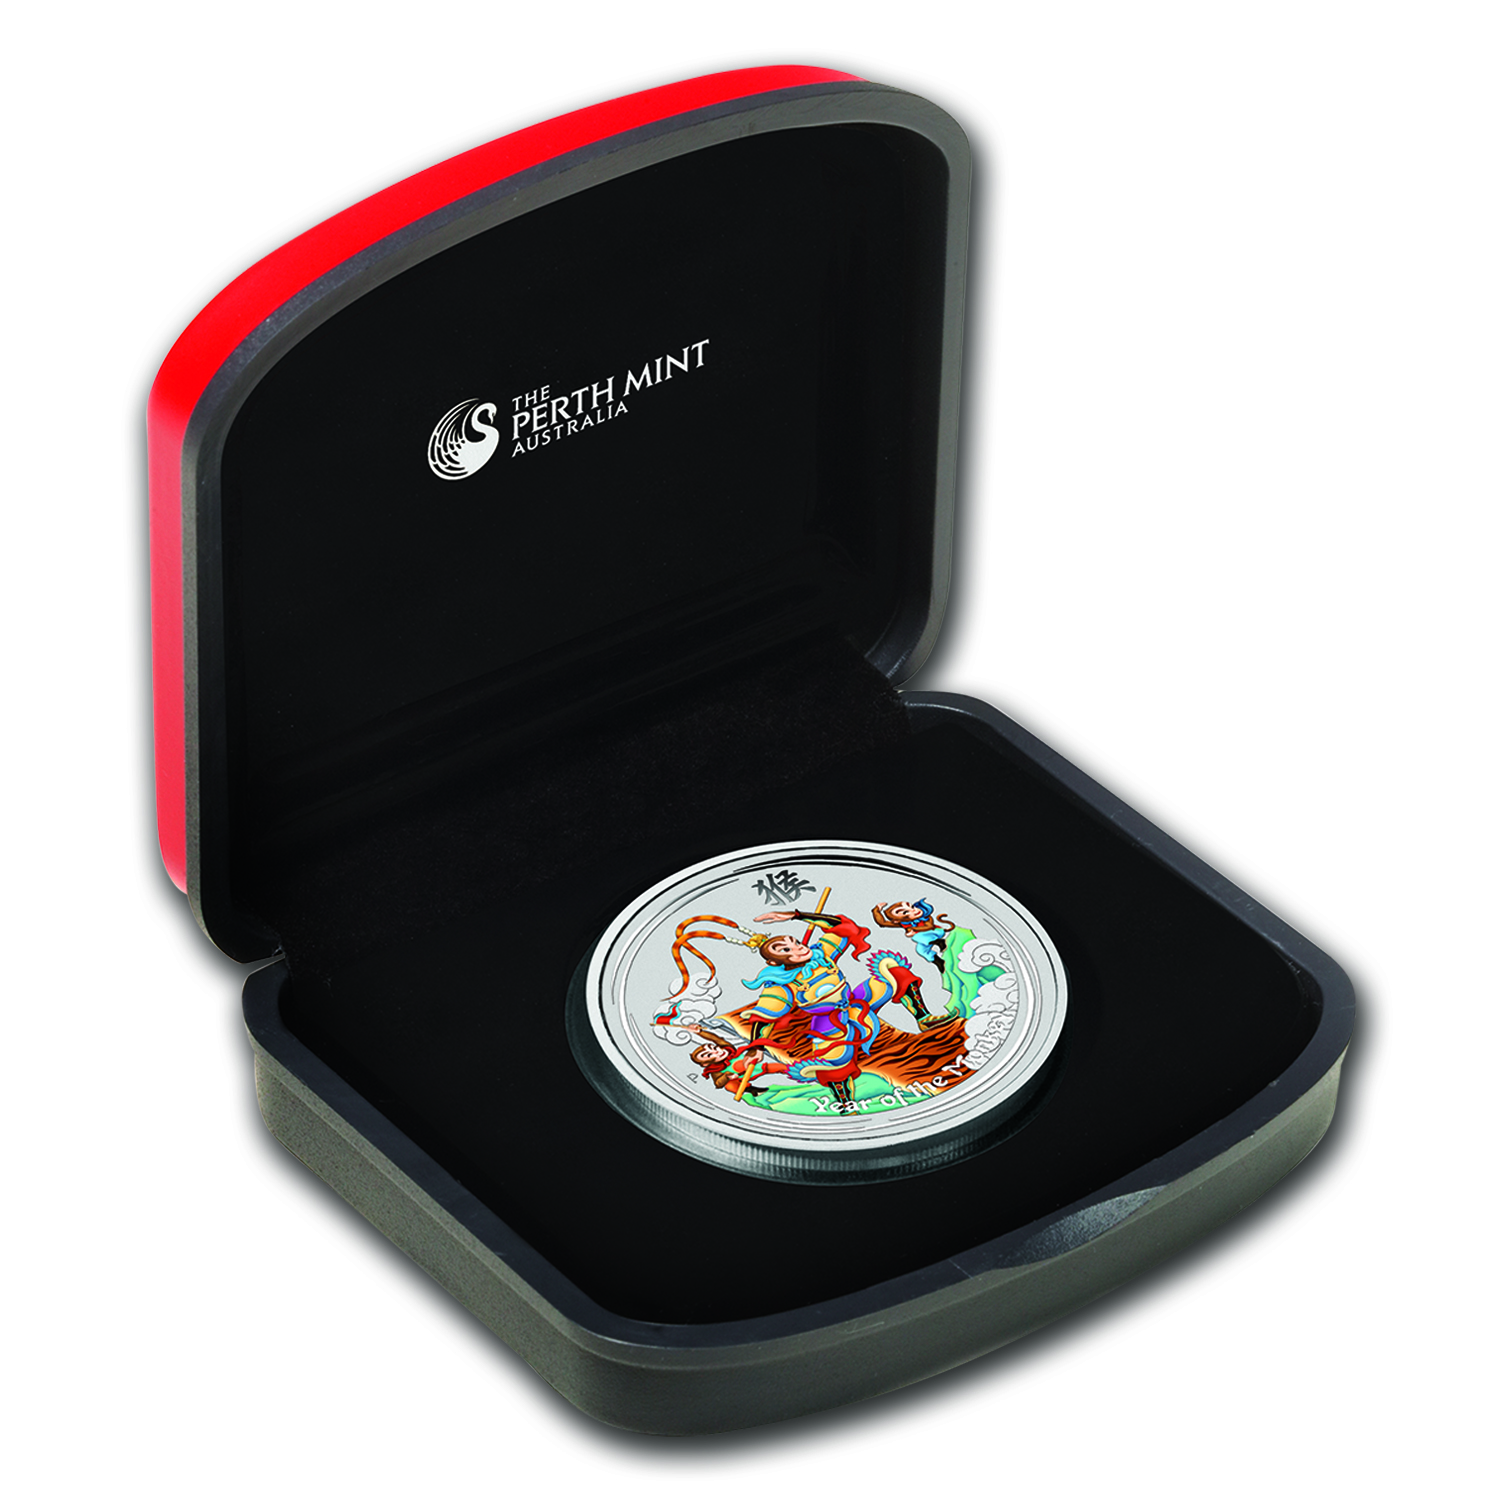 2016 Australia 1 oz Silver Lunar Monkey King Proof (Colorized)